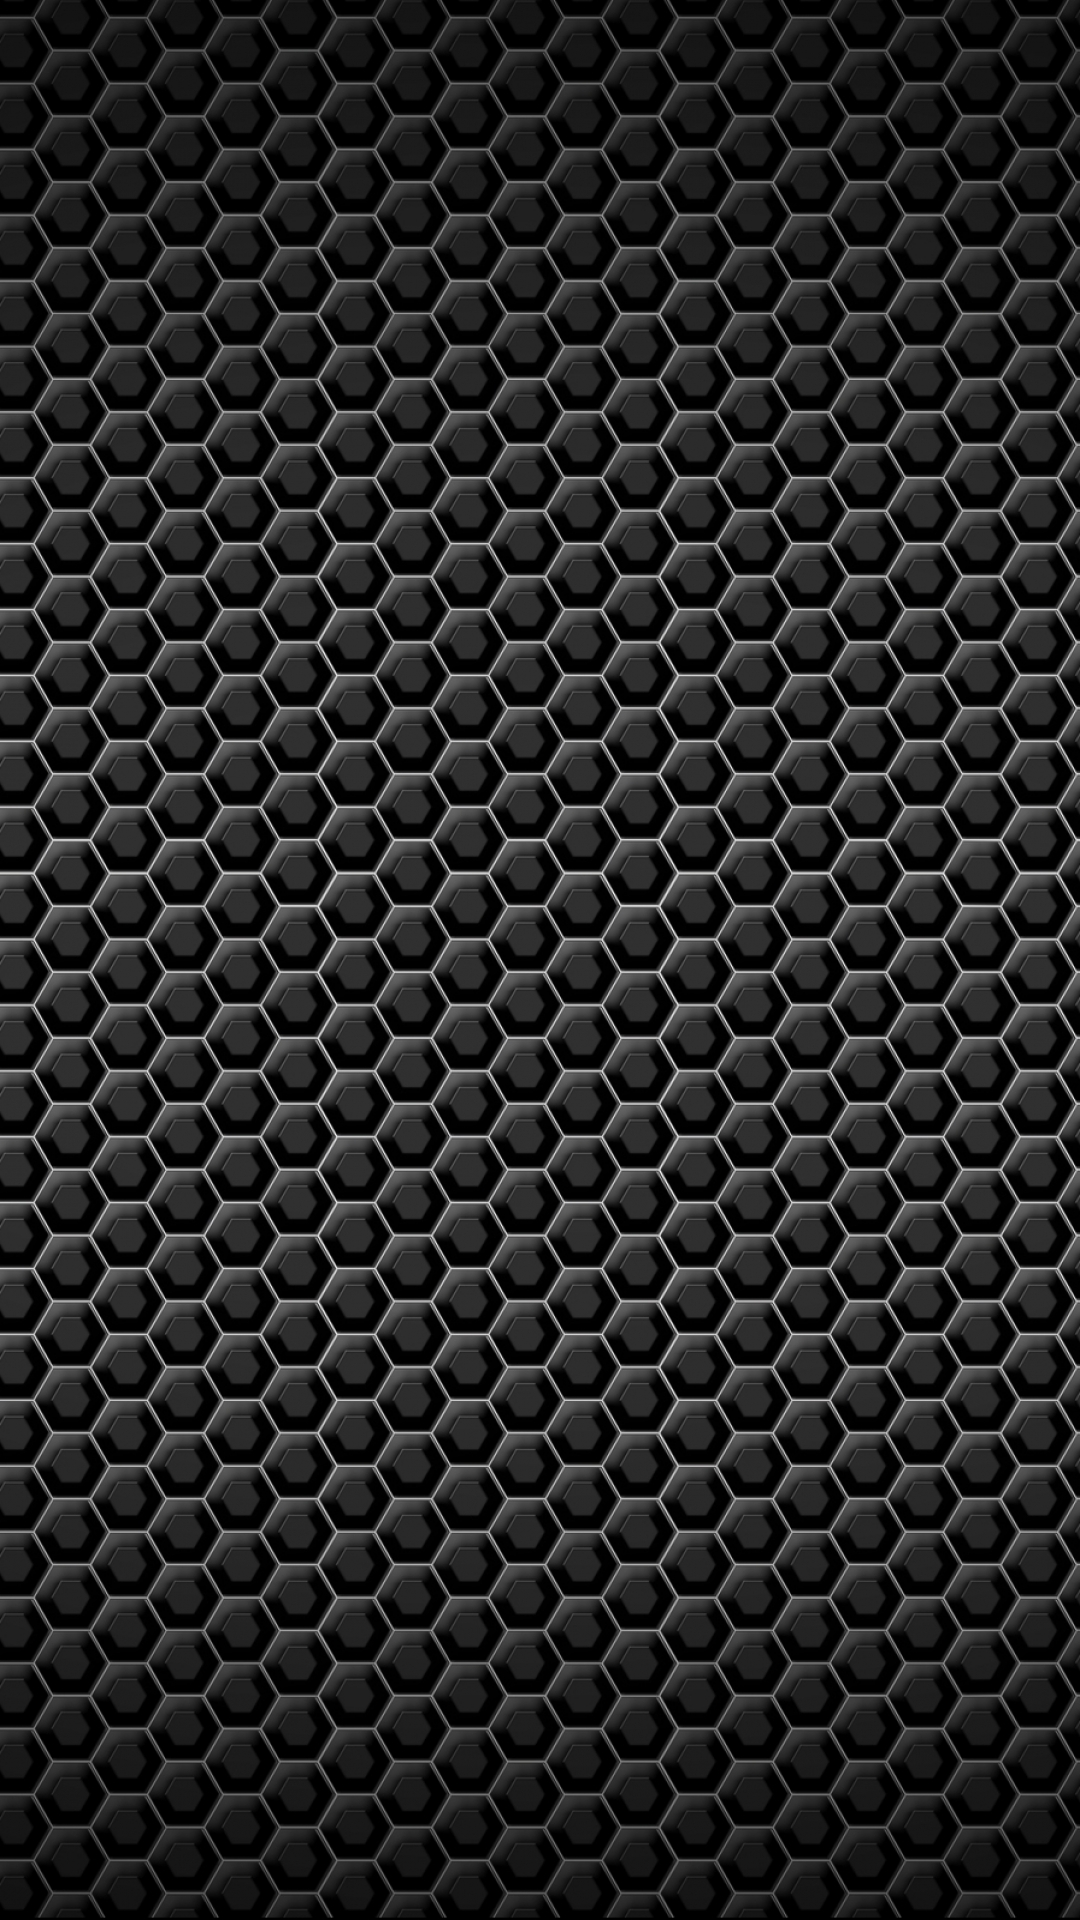 texture wallpapers for iphone